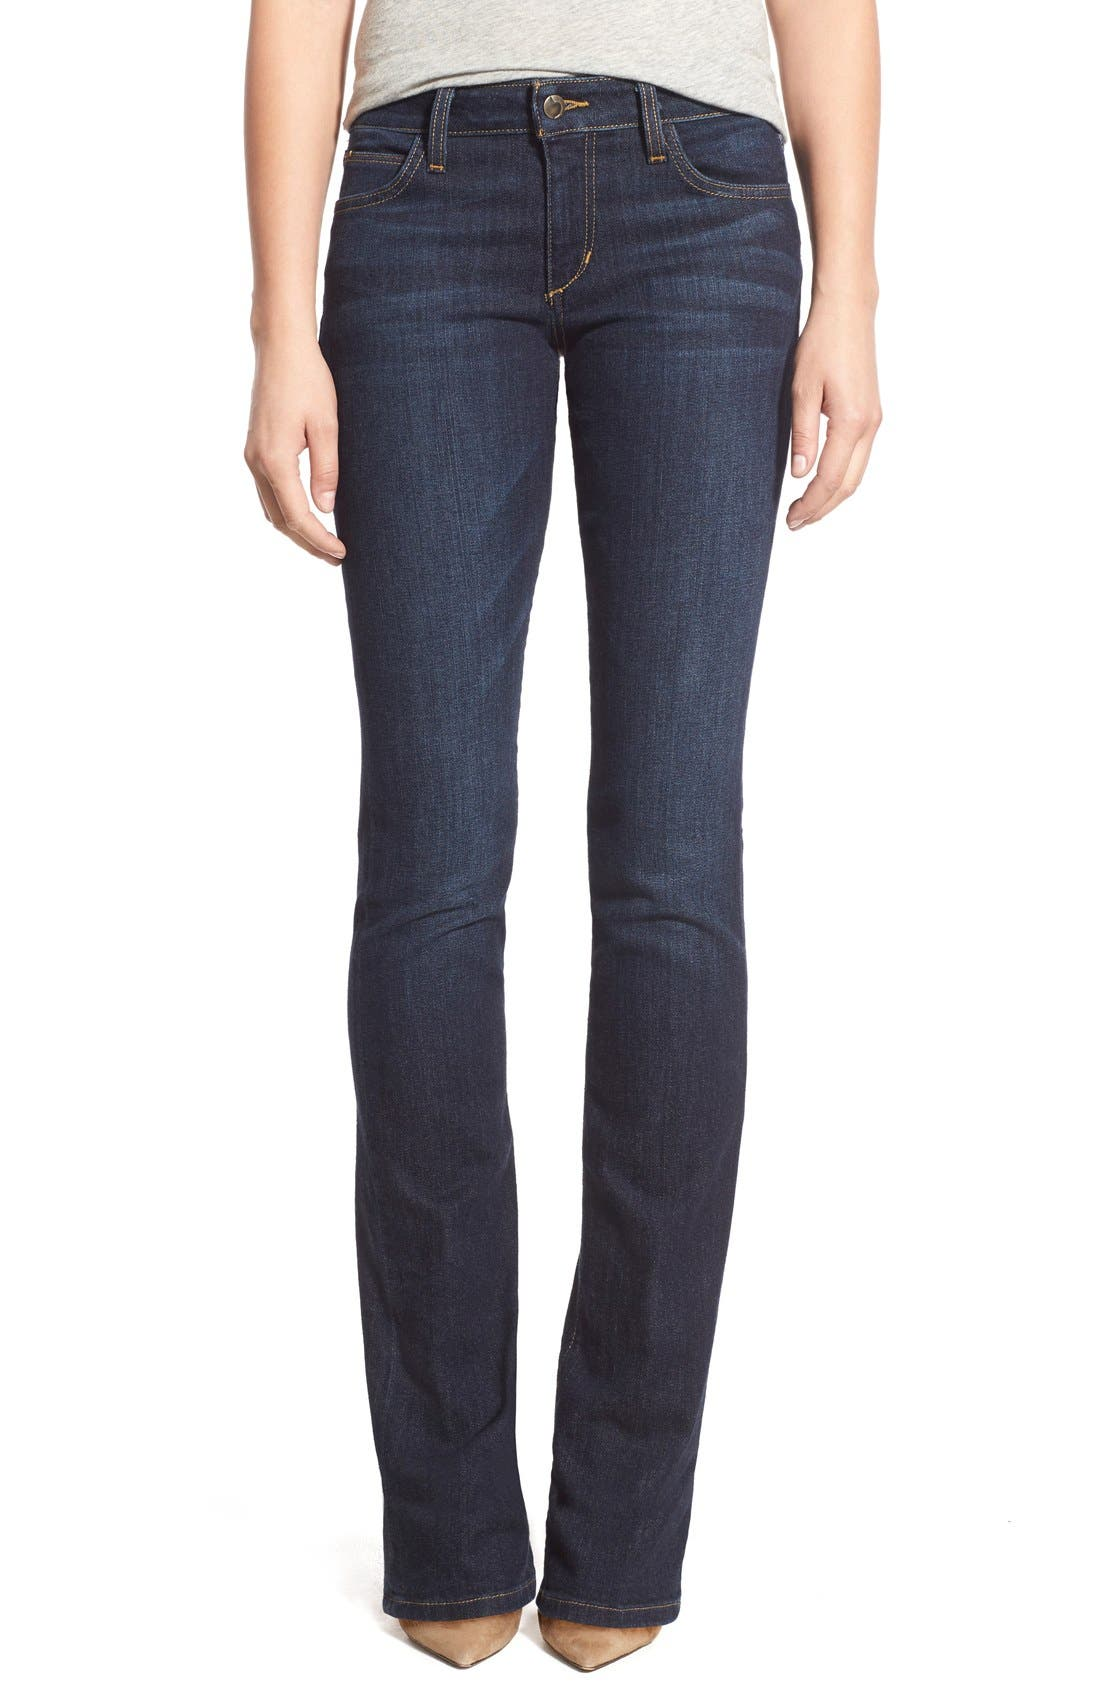 JOE'S, Honey Curvy Bootcut Jeans, Main thumbnail 1, color, RIKKI